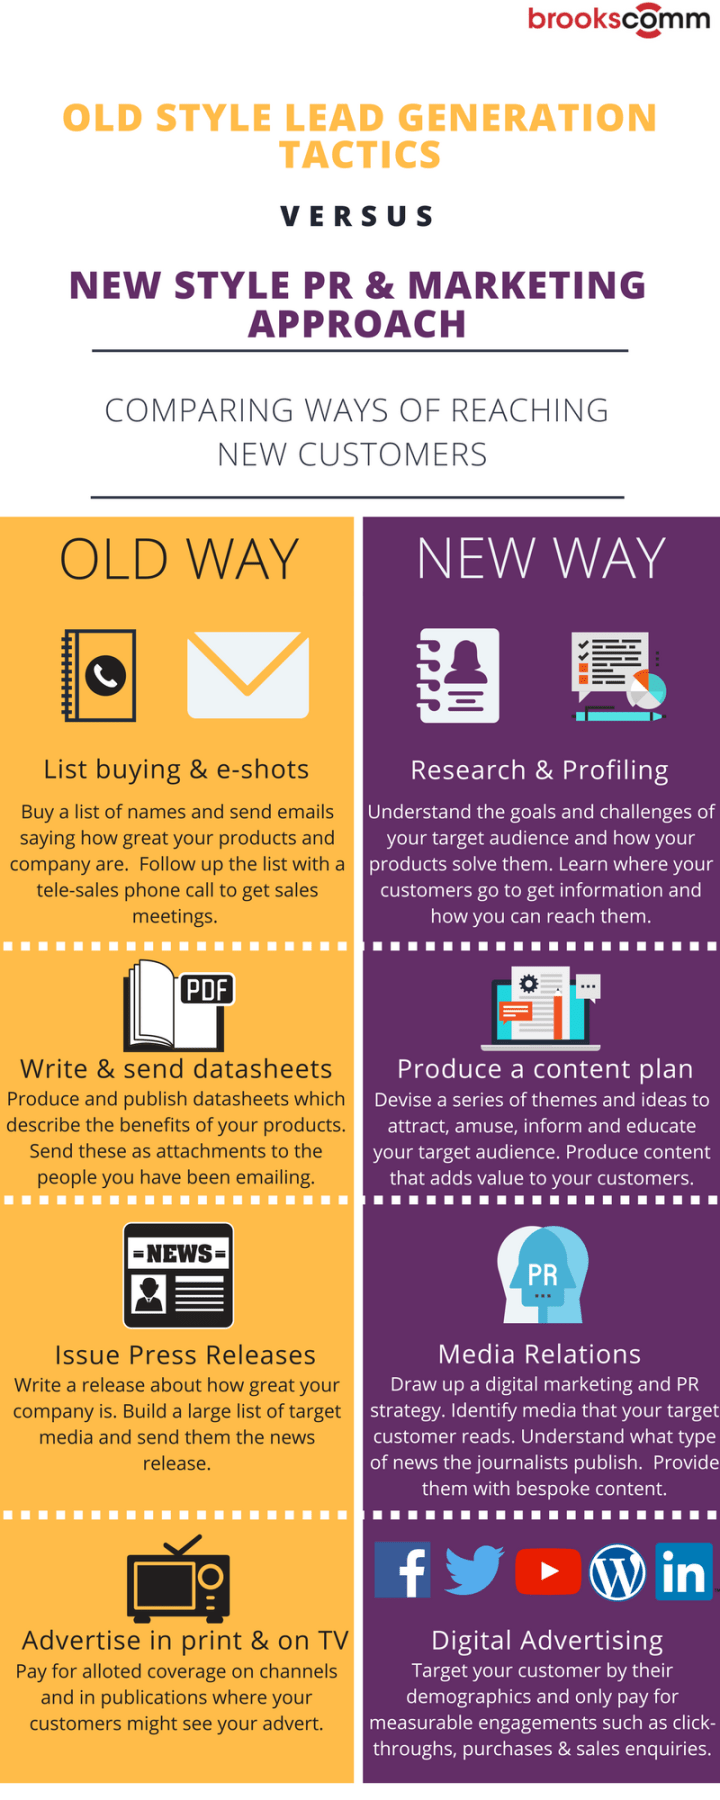 comparing-ways-of-reaching-new-customers-infographic